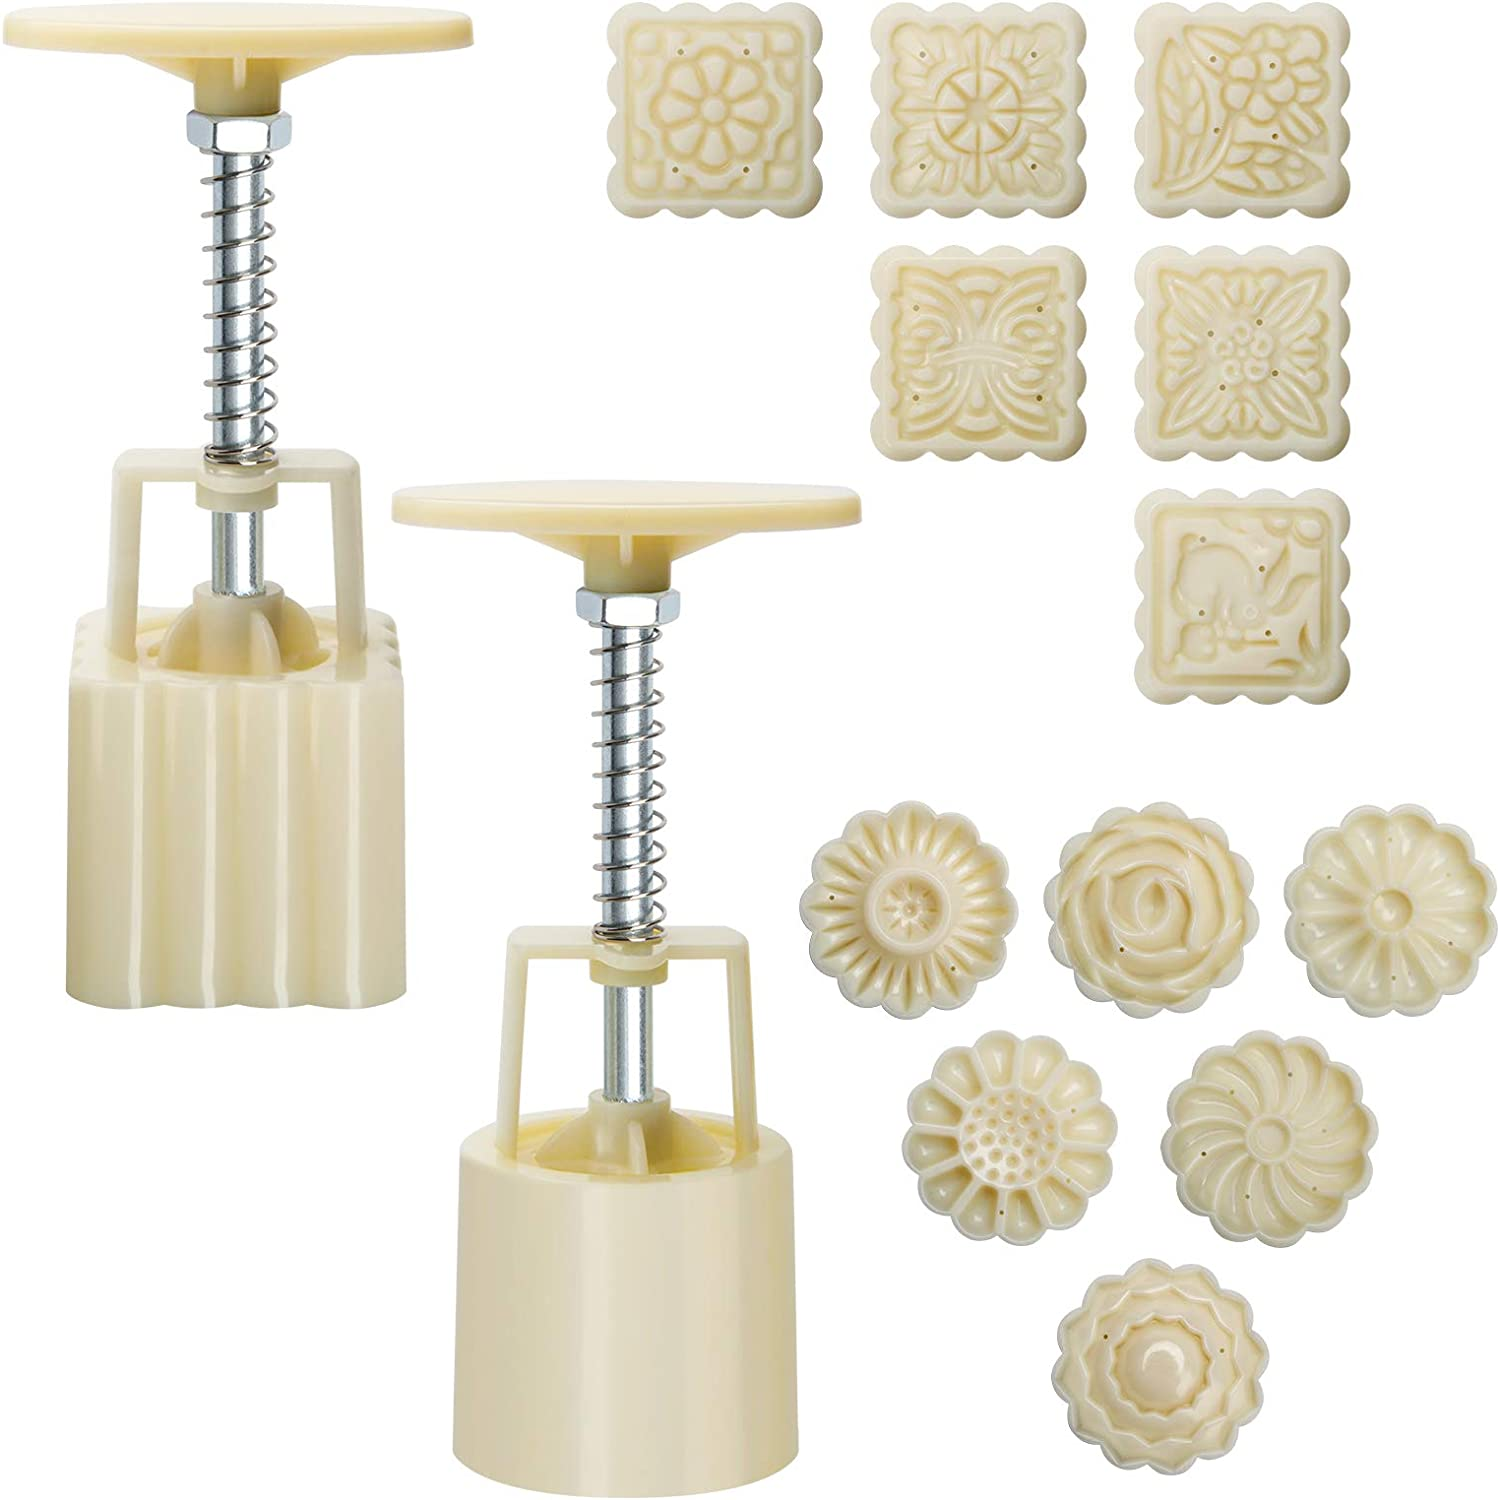 Moon Cake Mould 50g, Luxiv 12 PCS Pattern Hand-Pressure Mooncake Molds for Mid-Autumn DIY Pastry Tool 2 Sets with 6pcs Round Flower Mooncake Mode and 6 Pcs Square Pattern Mooncake Mould (White, 50g)